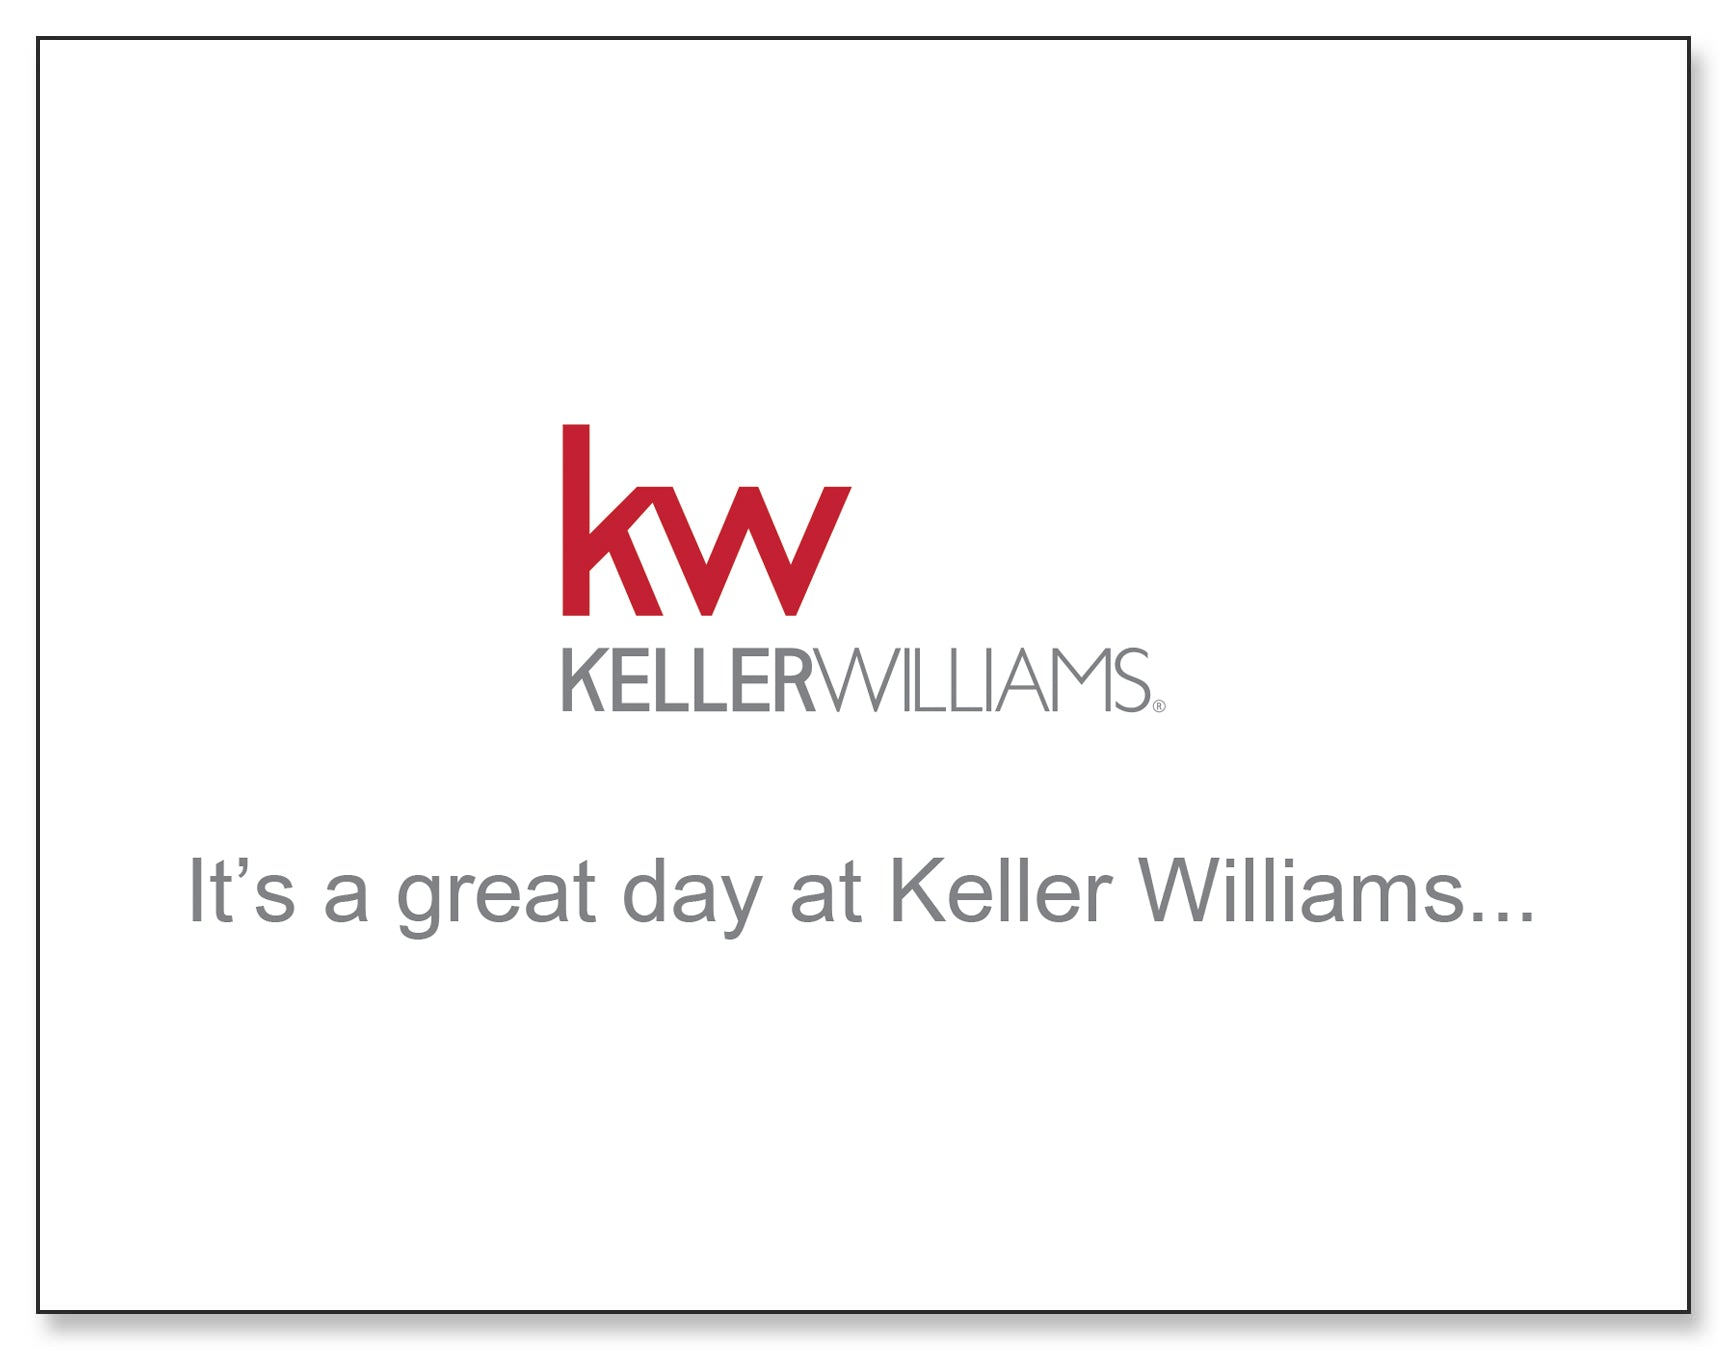 White greeting card with Keller Williams logo and great day message